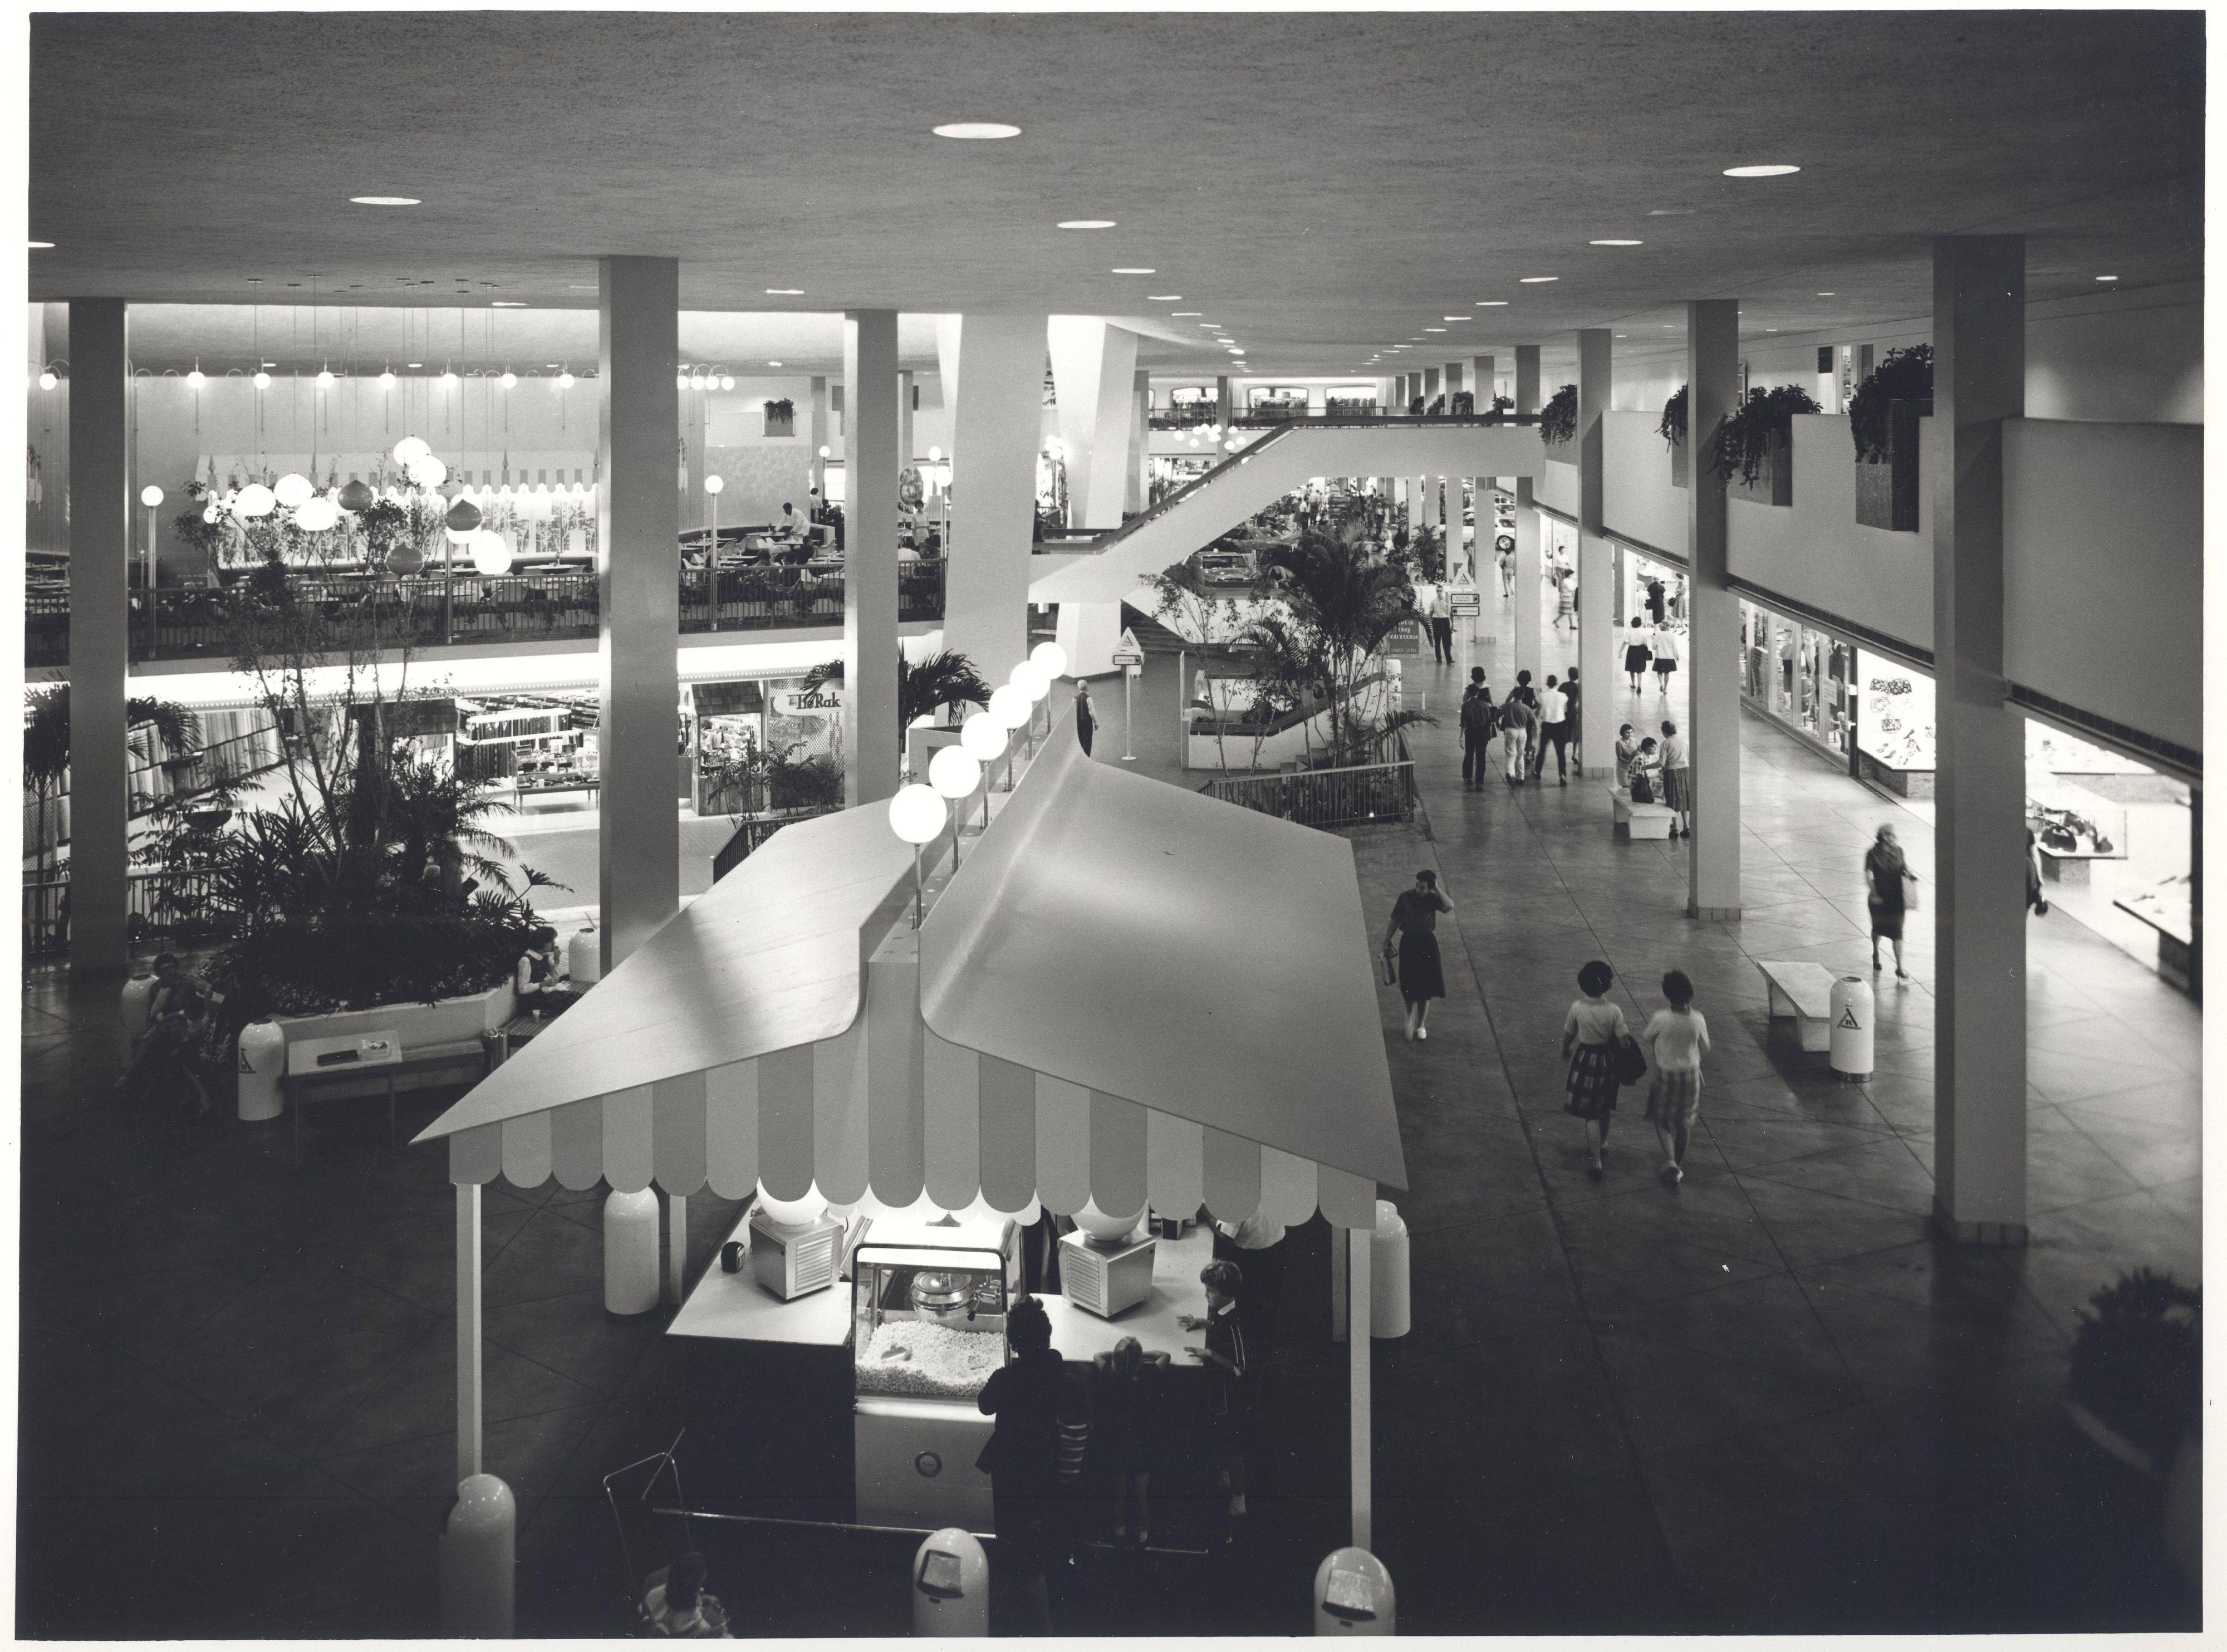 Randhurst Mall opened at Rand and Elmhurst roads in 1962, and it announced that the Northwest suburbs had arrived, one historian says.